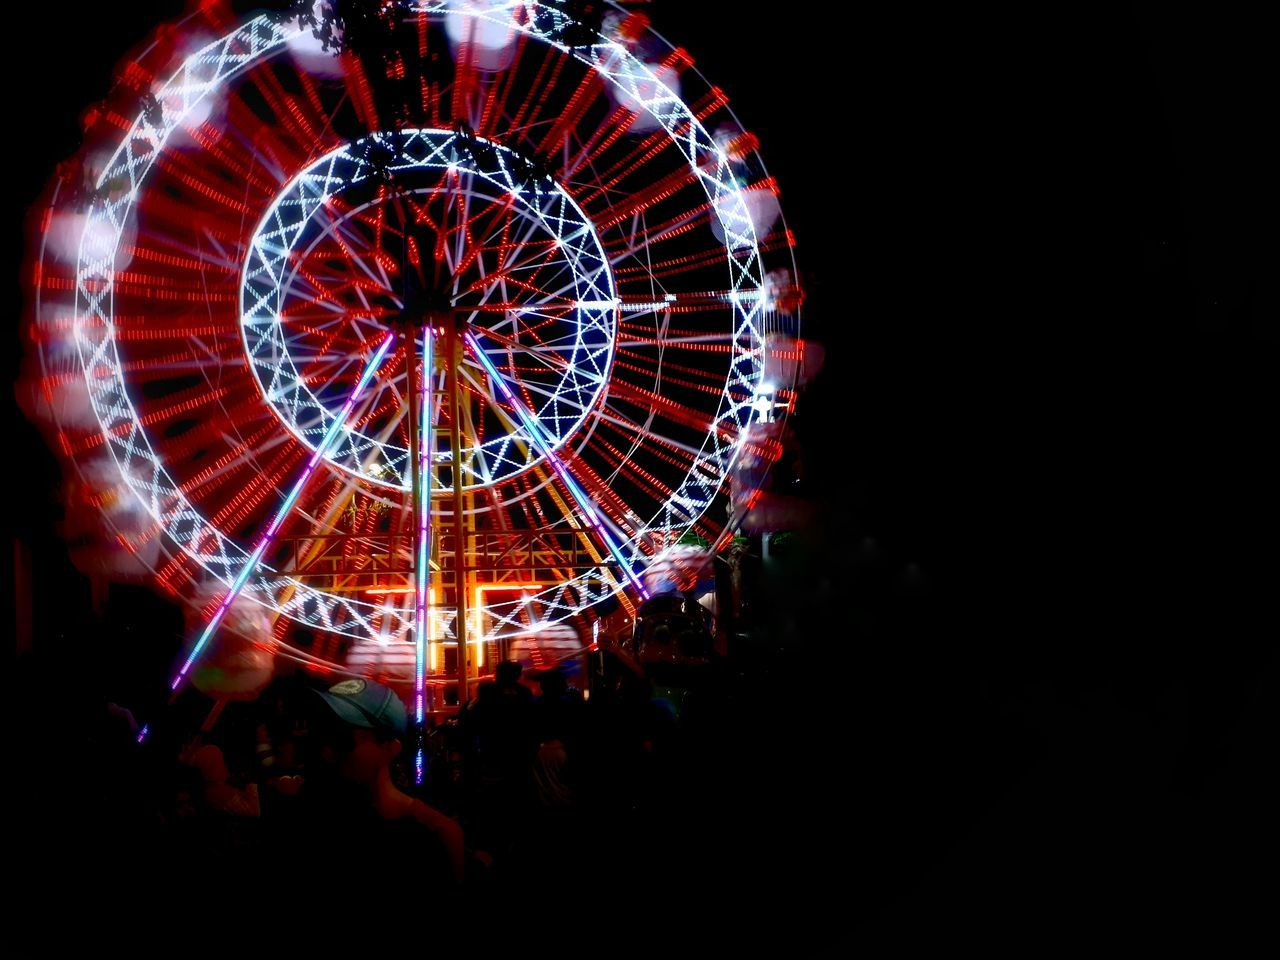 arts culture and entertainment, amusement park, illuminated, leisure activity, night, enjoyment, amusement park ride, real people, ferris wheel, large group of people, outdoors, people